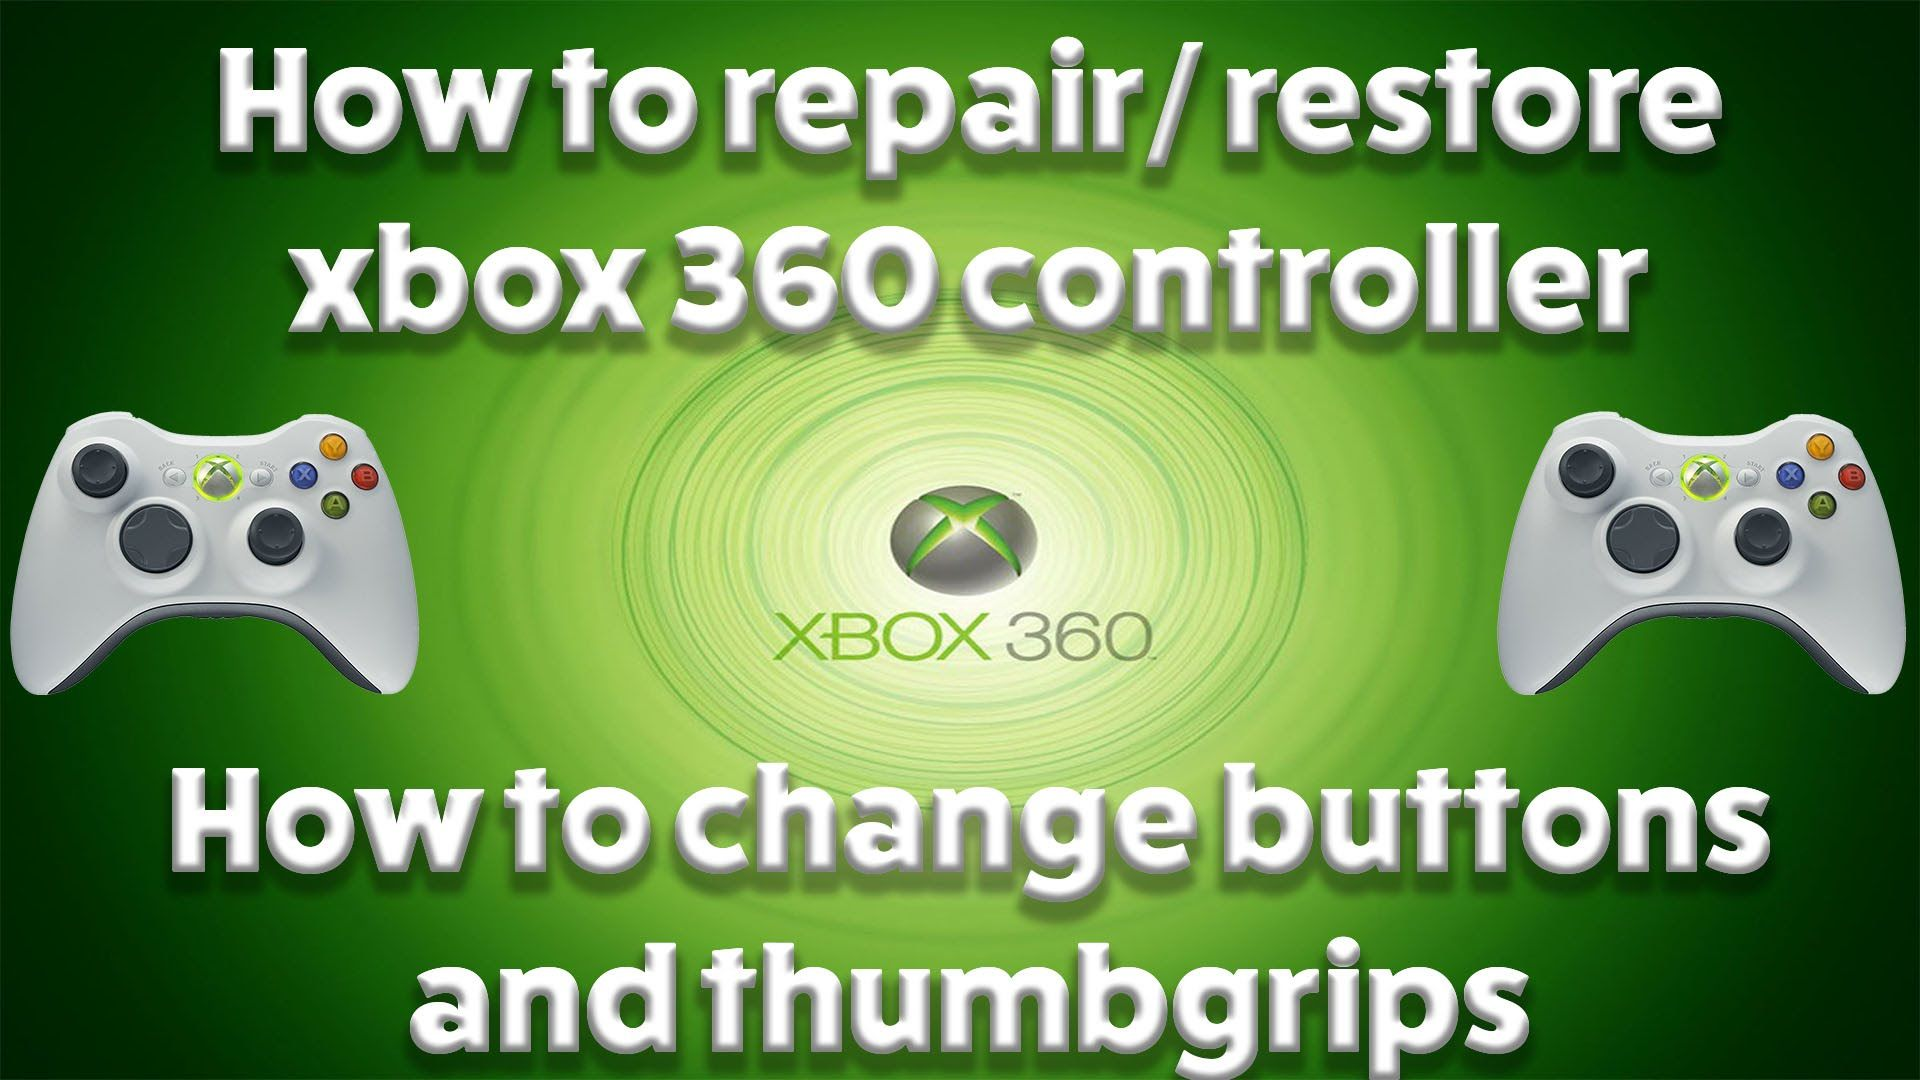 Pin By Zanygeek On Game Console Tutorial Videos Xbox 360 Controller Repair Xbox